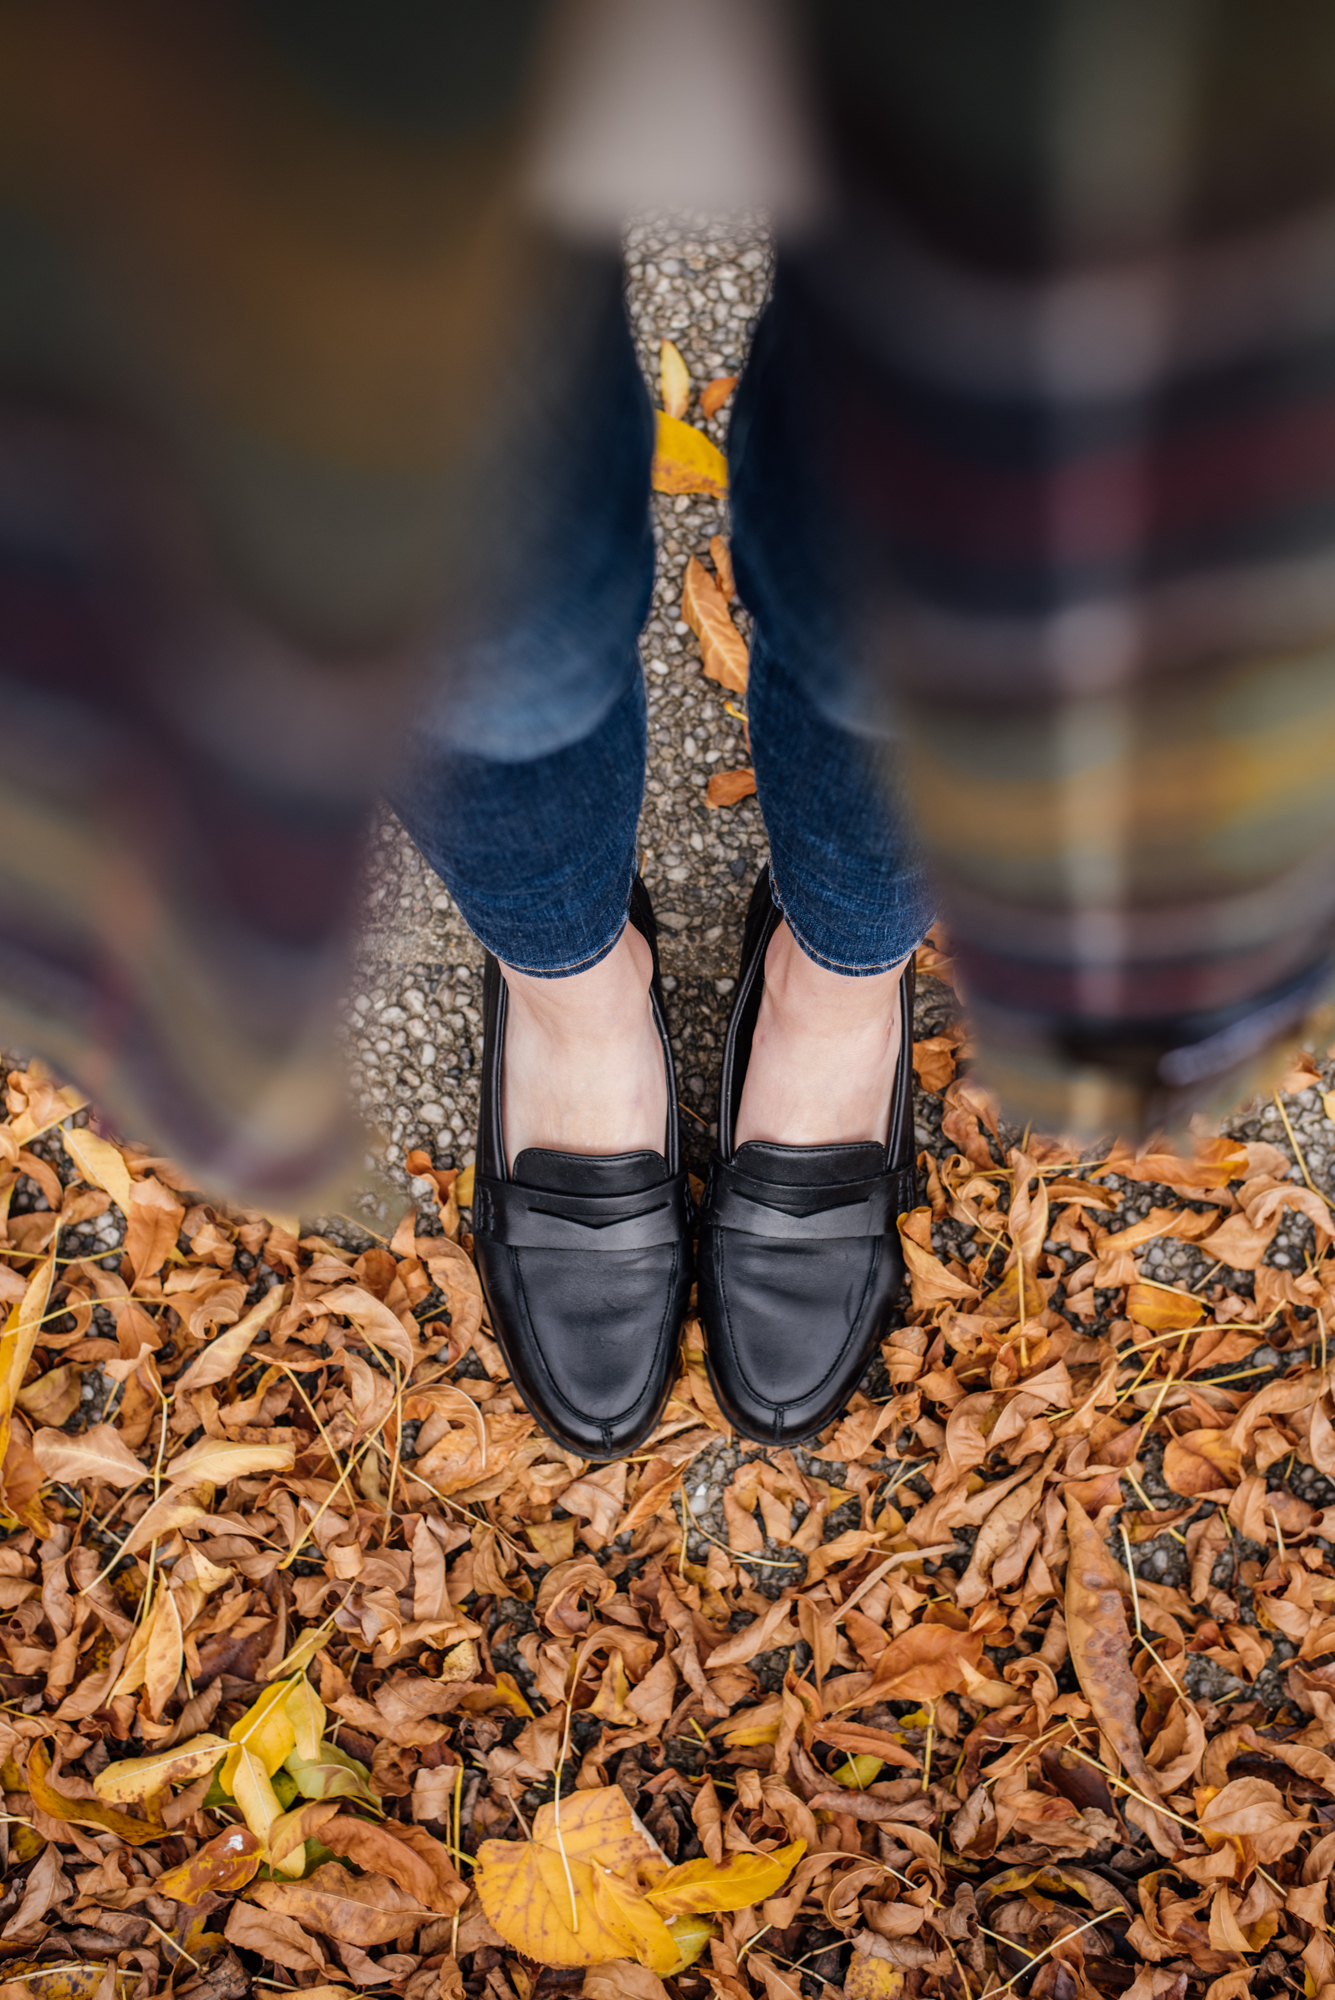 Woman wearing black loafers from clarks while standing on a pile of yellow fallen leaves